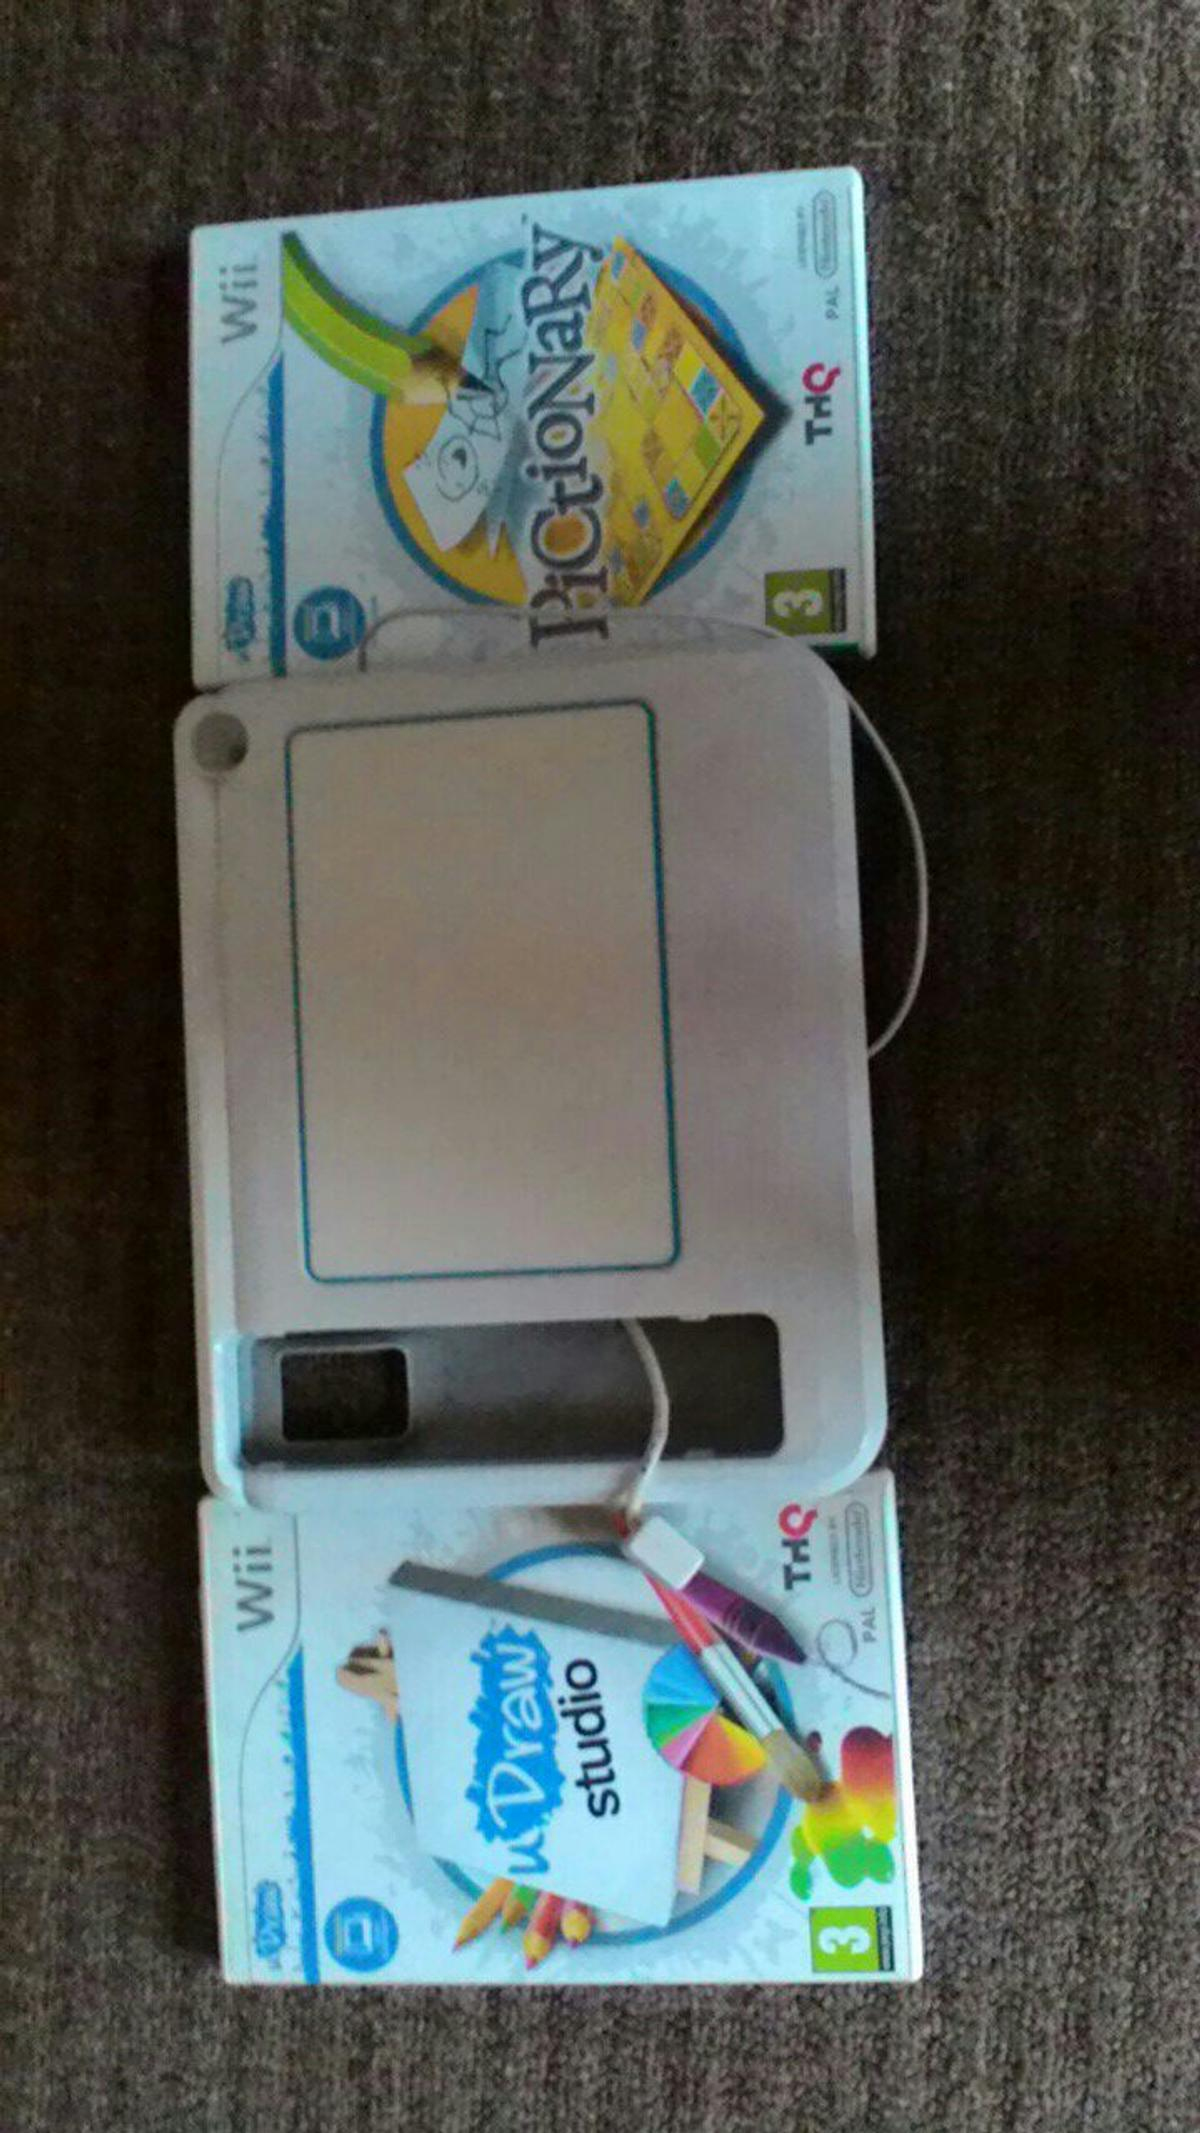 drawing games for wii Wii UDraw Tablet And 2 Games